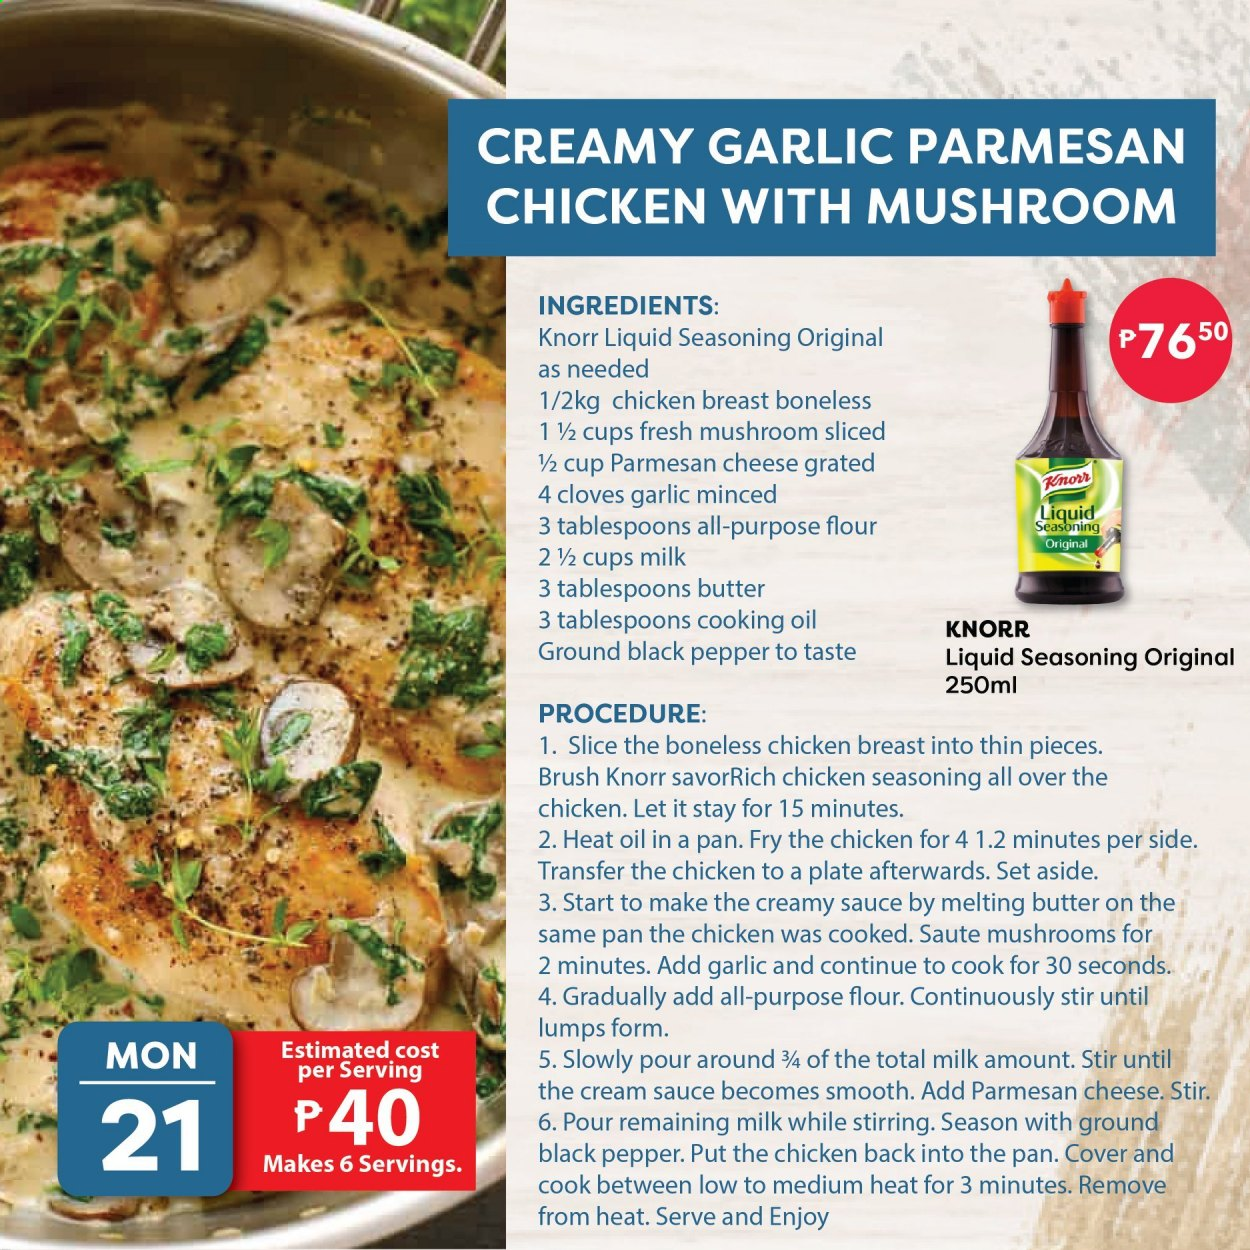 Walter Mart offer  - 21.9.2020 - 24.9.2020 - Sales products - brush, cover, cream sauce, cup, flour, garlic, milk, mushrooms, chicken, chicken breast, pan, parmesan, cheese, mushroom, black pepper, pepper, cloves, knorr, sauce, smooth, liquid, oil. Page 4.